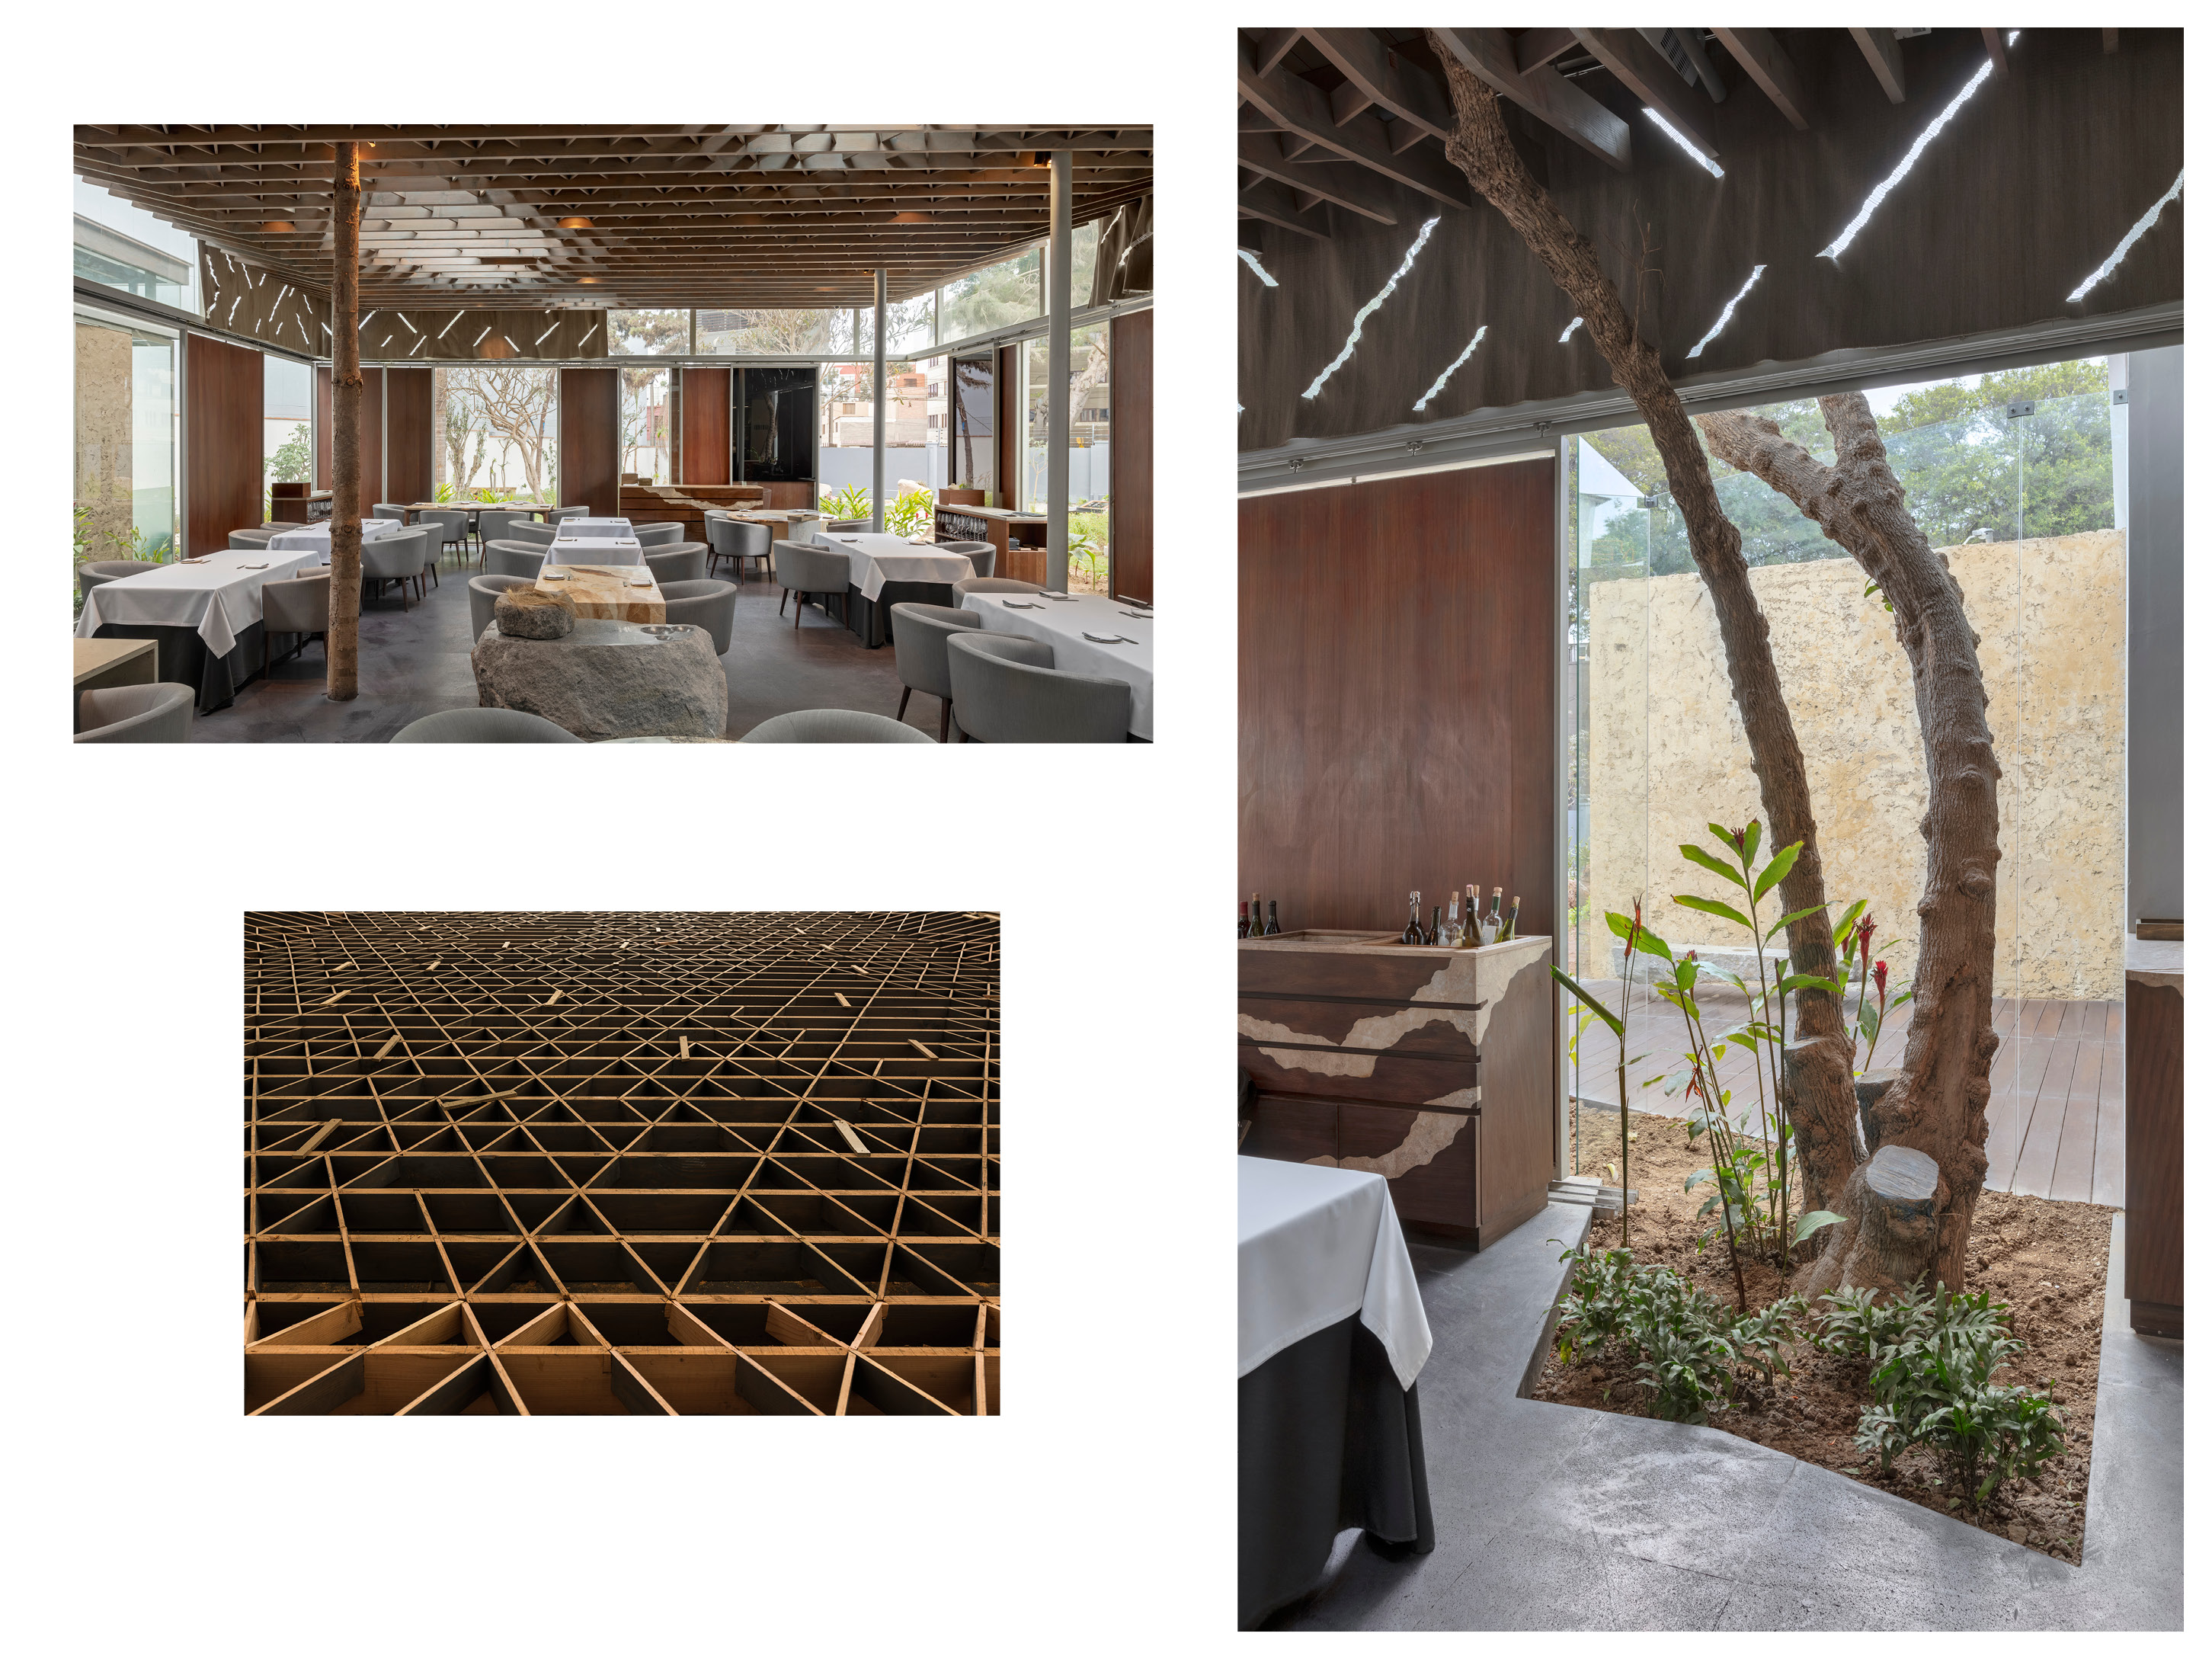 Arquitectura sostenible. Los árboles existentes fueron integrados a la arquitectura del restaurante. Sustainable architecture. The existing trees were integrated into the restaurant architecture.